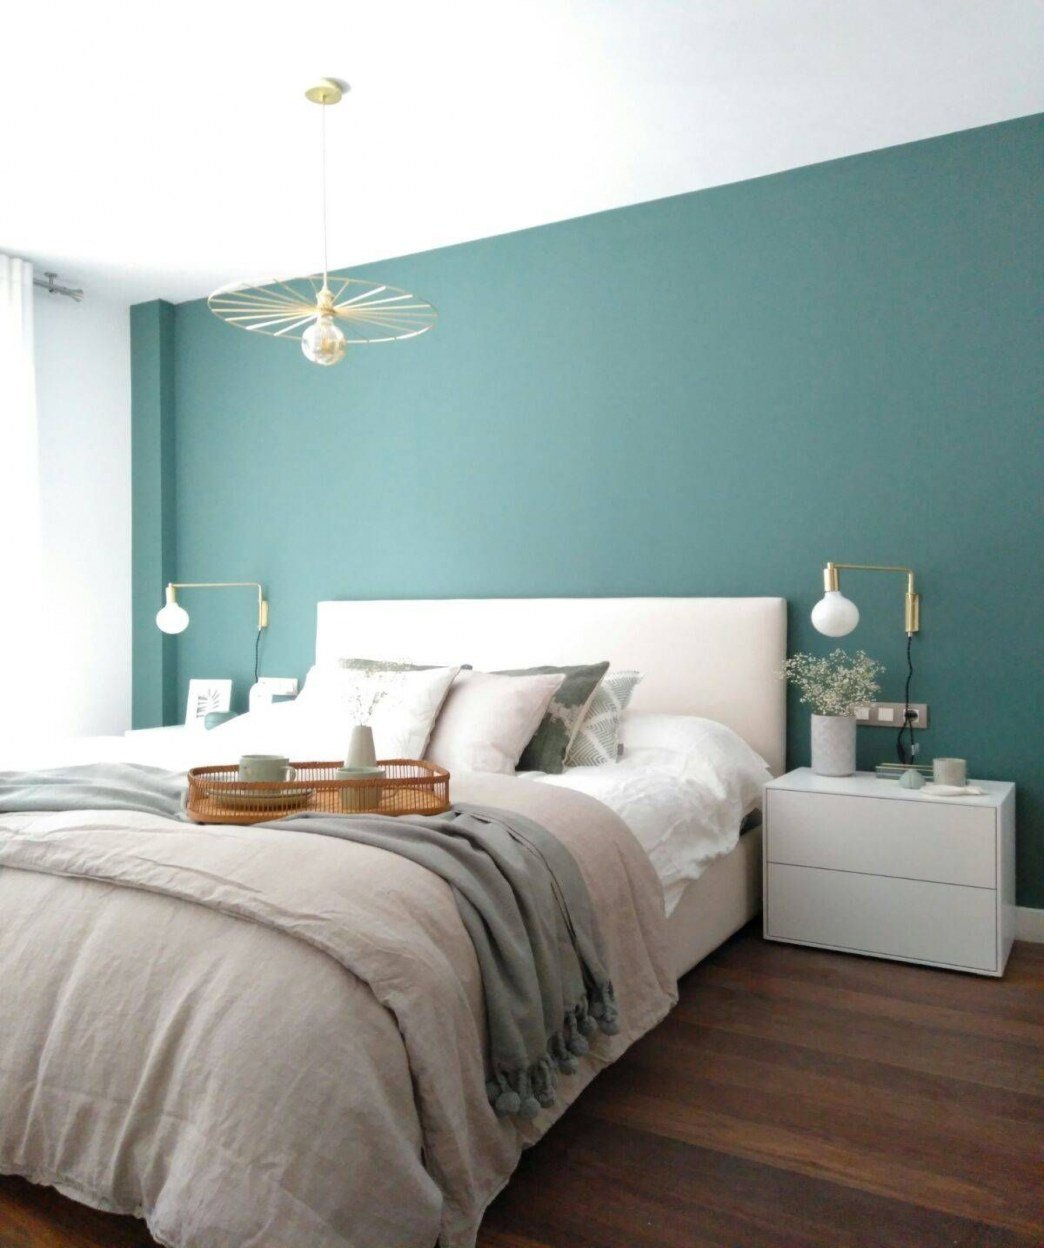 Small Bedroom Color Ideas Luxury Bedroom Color Ideas We assist You Pick An Excellent Bedroom